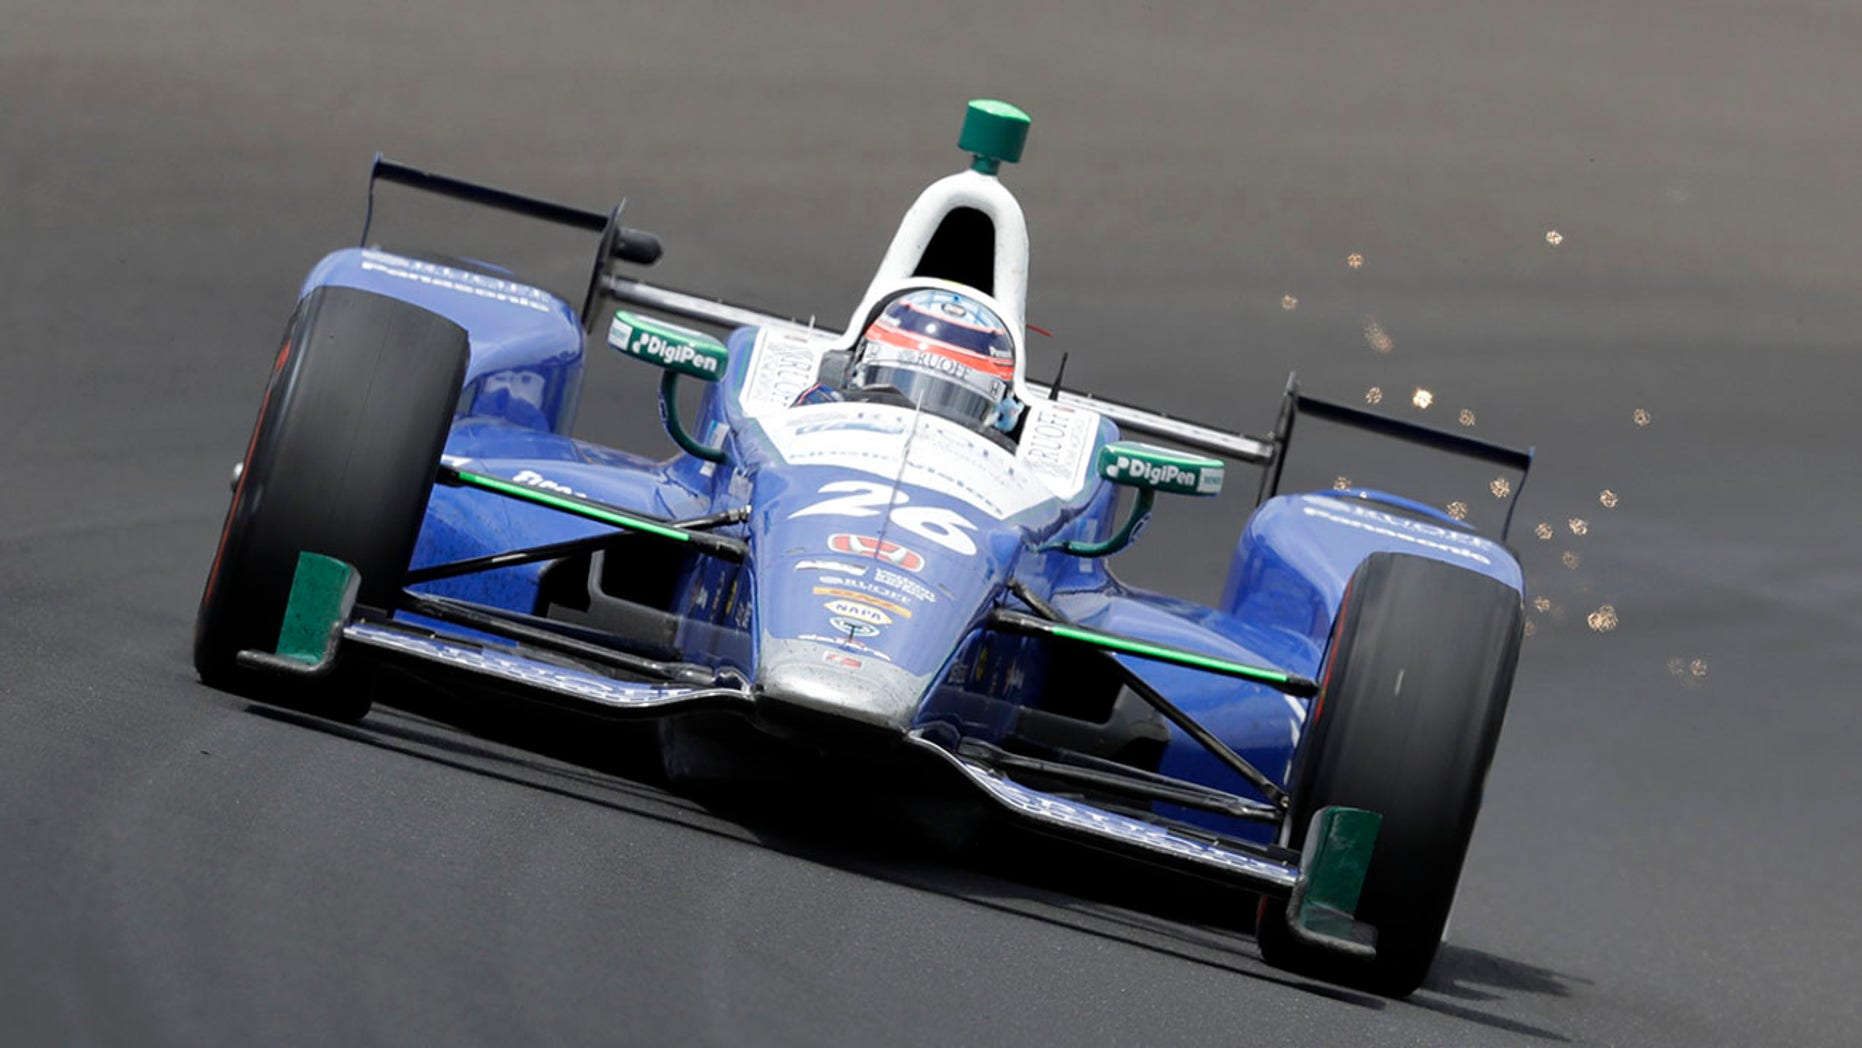 Takuma Sato, of Japan, drives through the first turn during the running of the Indianapolis 500 auto race at Indianapolis Motor Speedway, Sunday, May 28, 2017, in Indianapolis. (AP Photo/Darron Cummings)